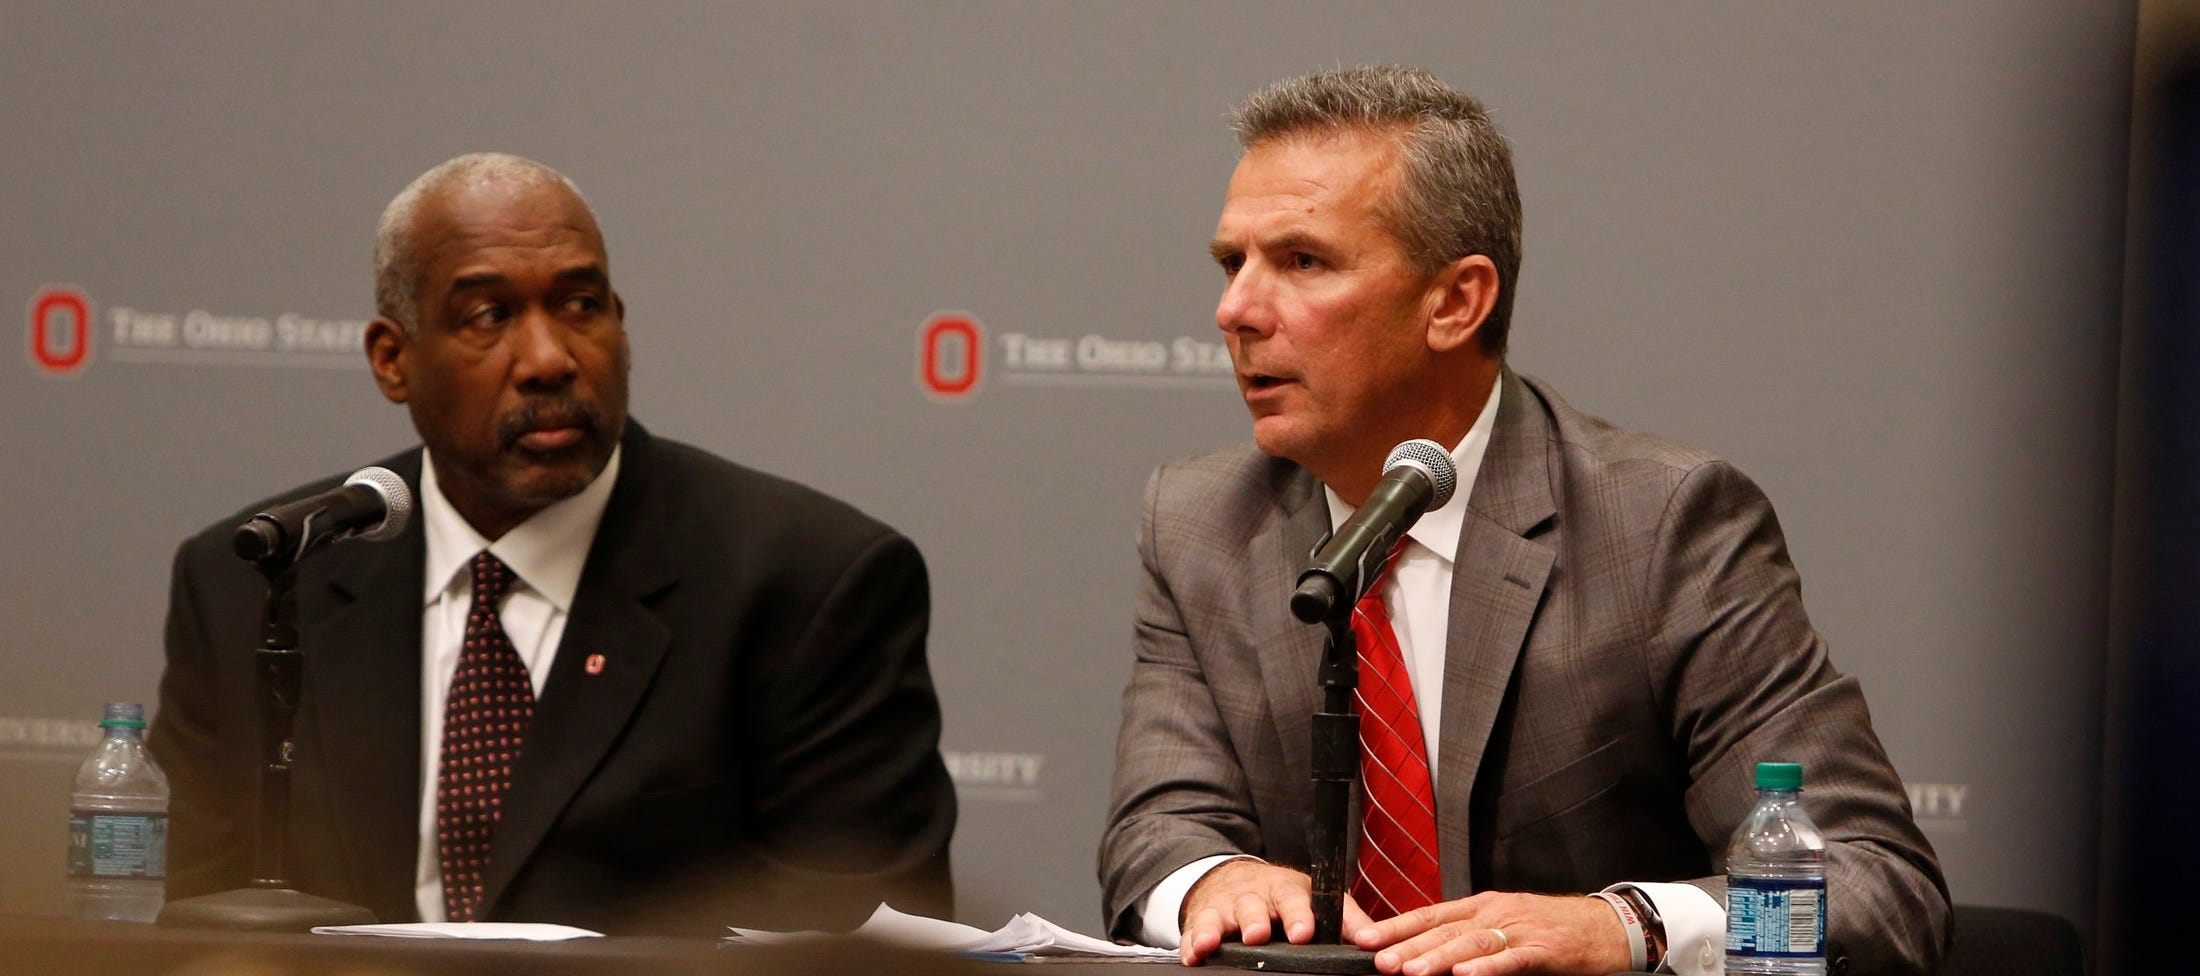 Ohio State football coach Urban Meyer and Athletic Director Gene Smith speak at a press conference on Aug. 22, 2018 at the Longaberger Alumni House.